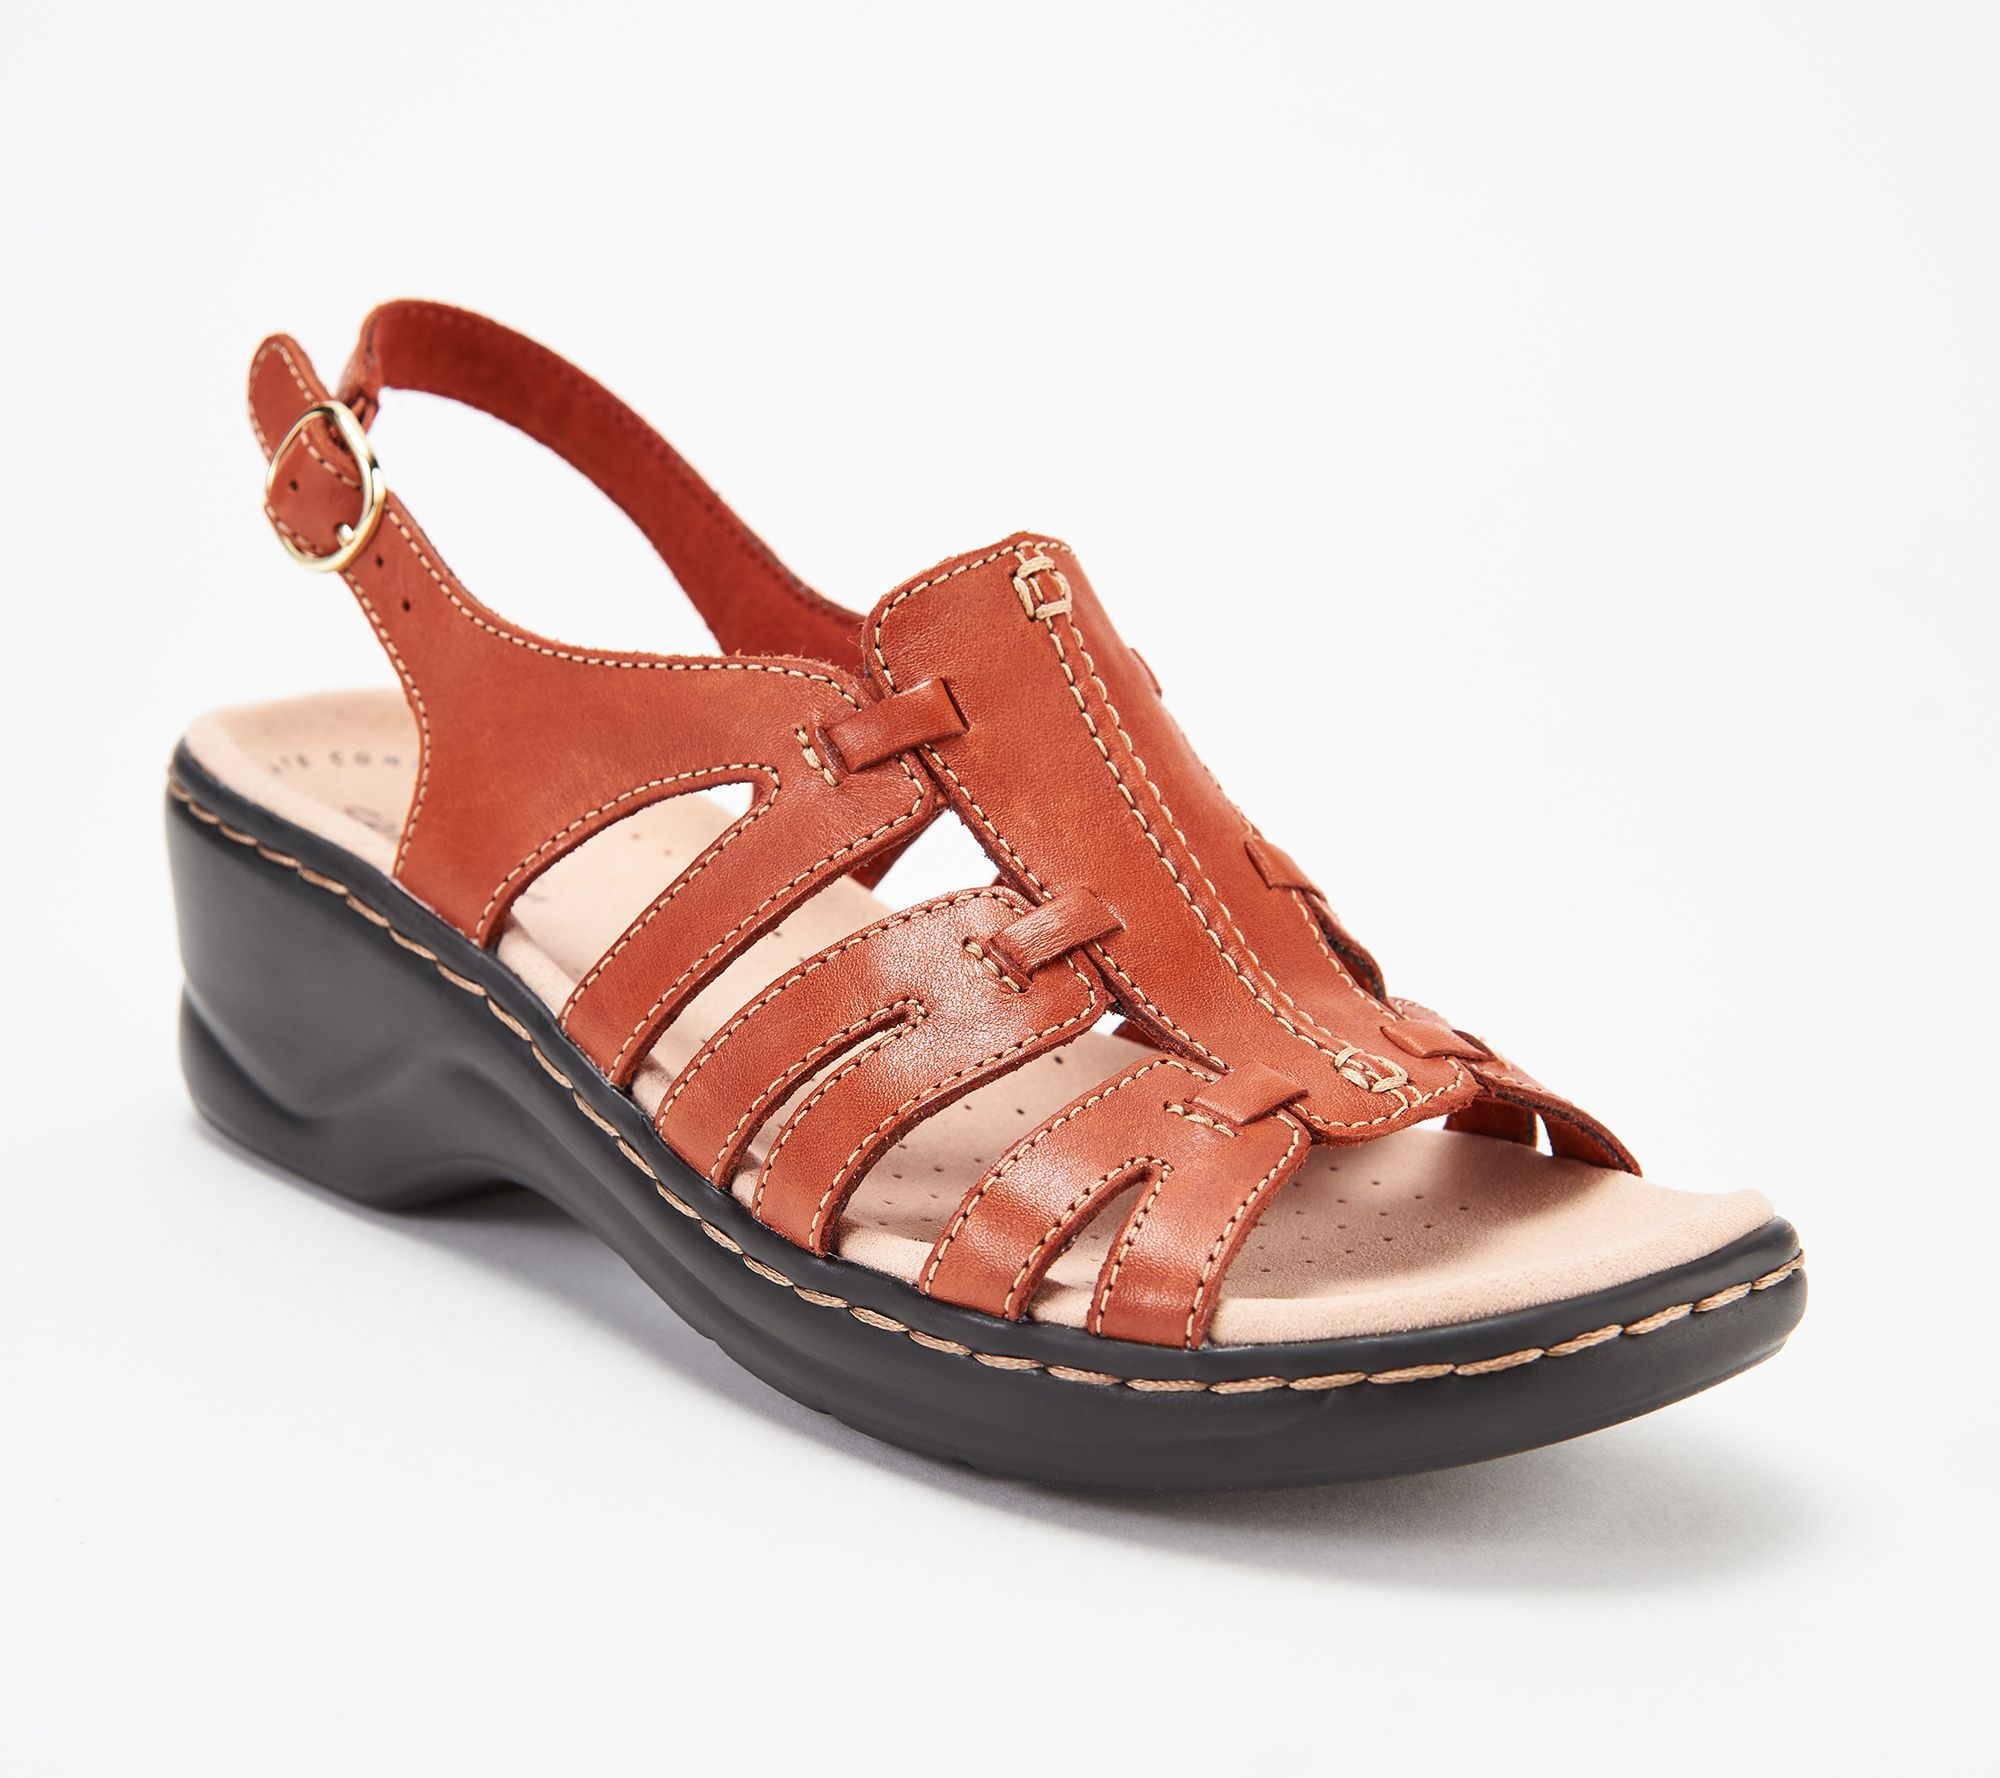 9ec4553f103 Clarks Leather Lightweight Sandals - Lexi Marigold - Page 1 — QVC.com